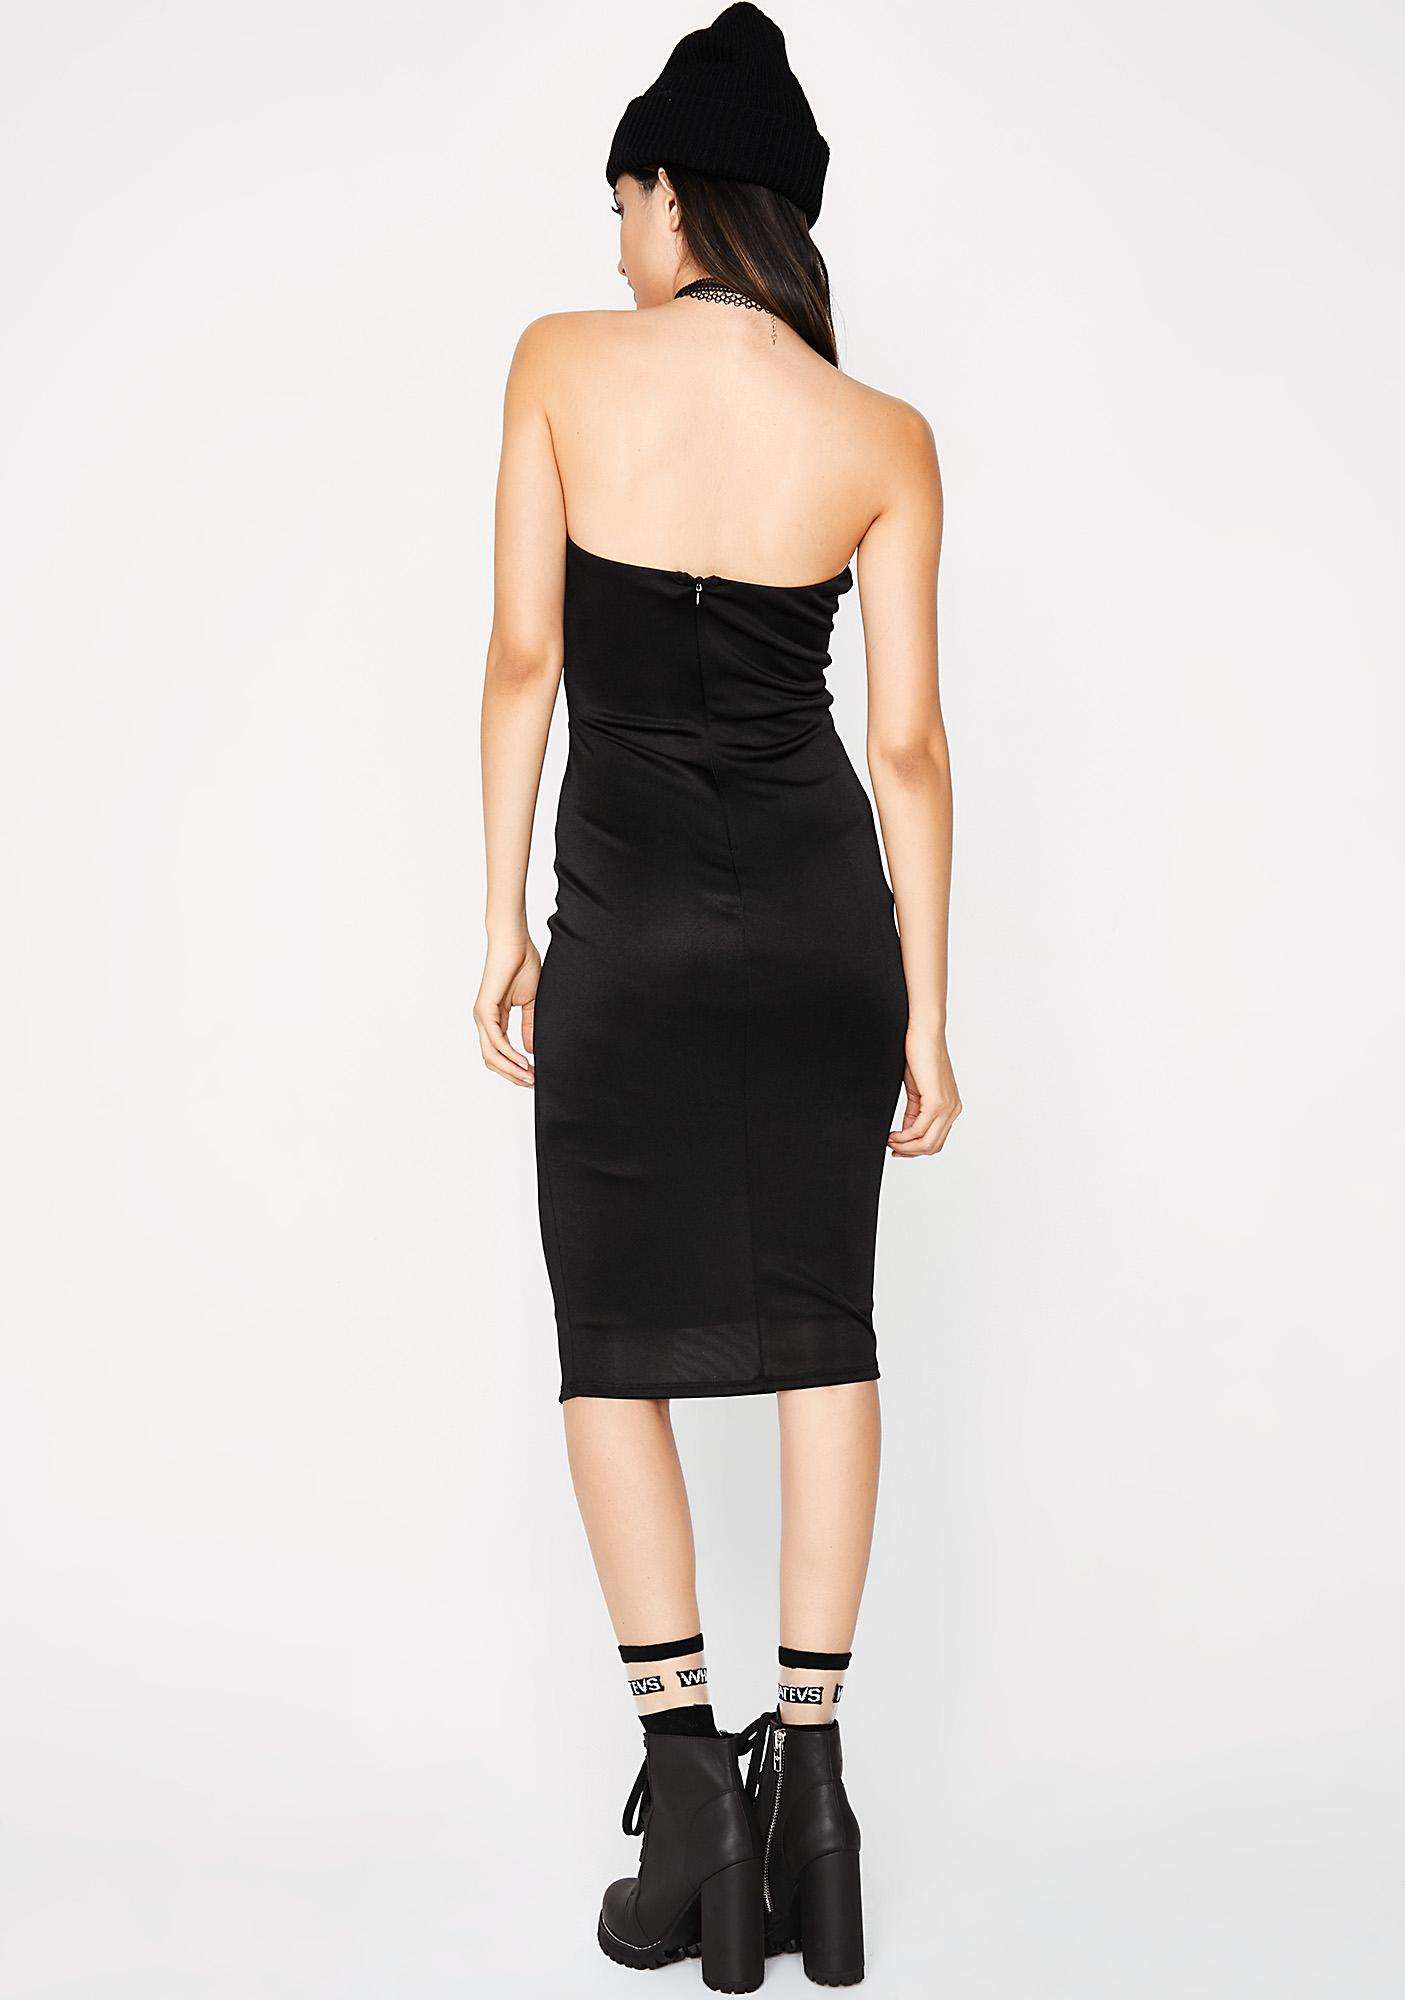 Get Away Vacation Bodycon Dress